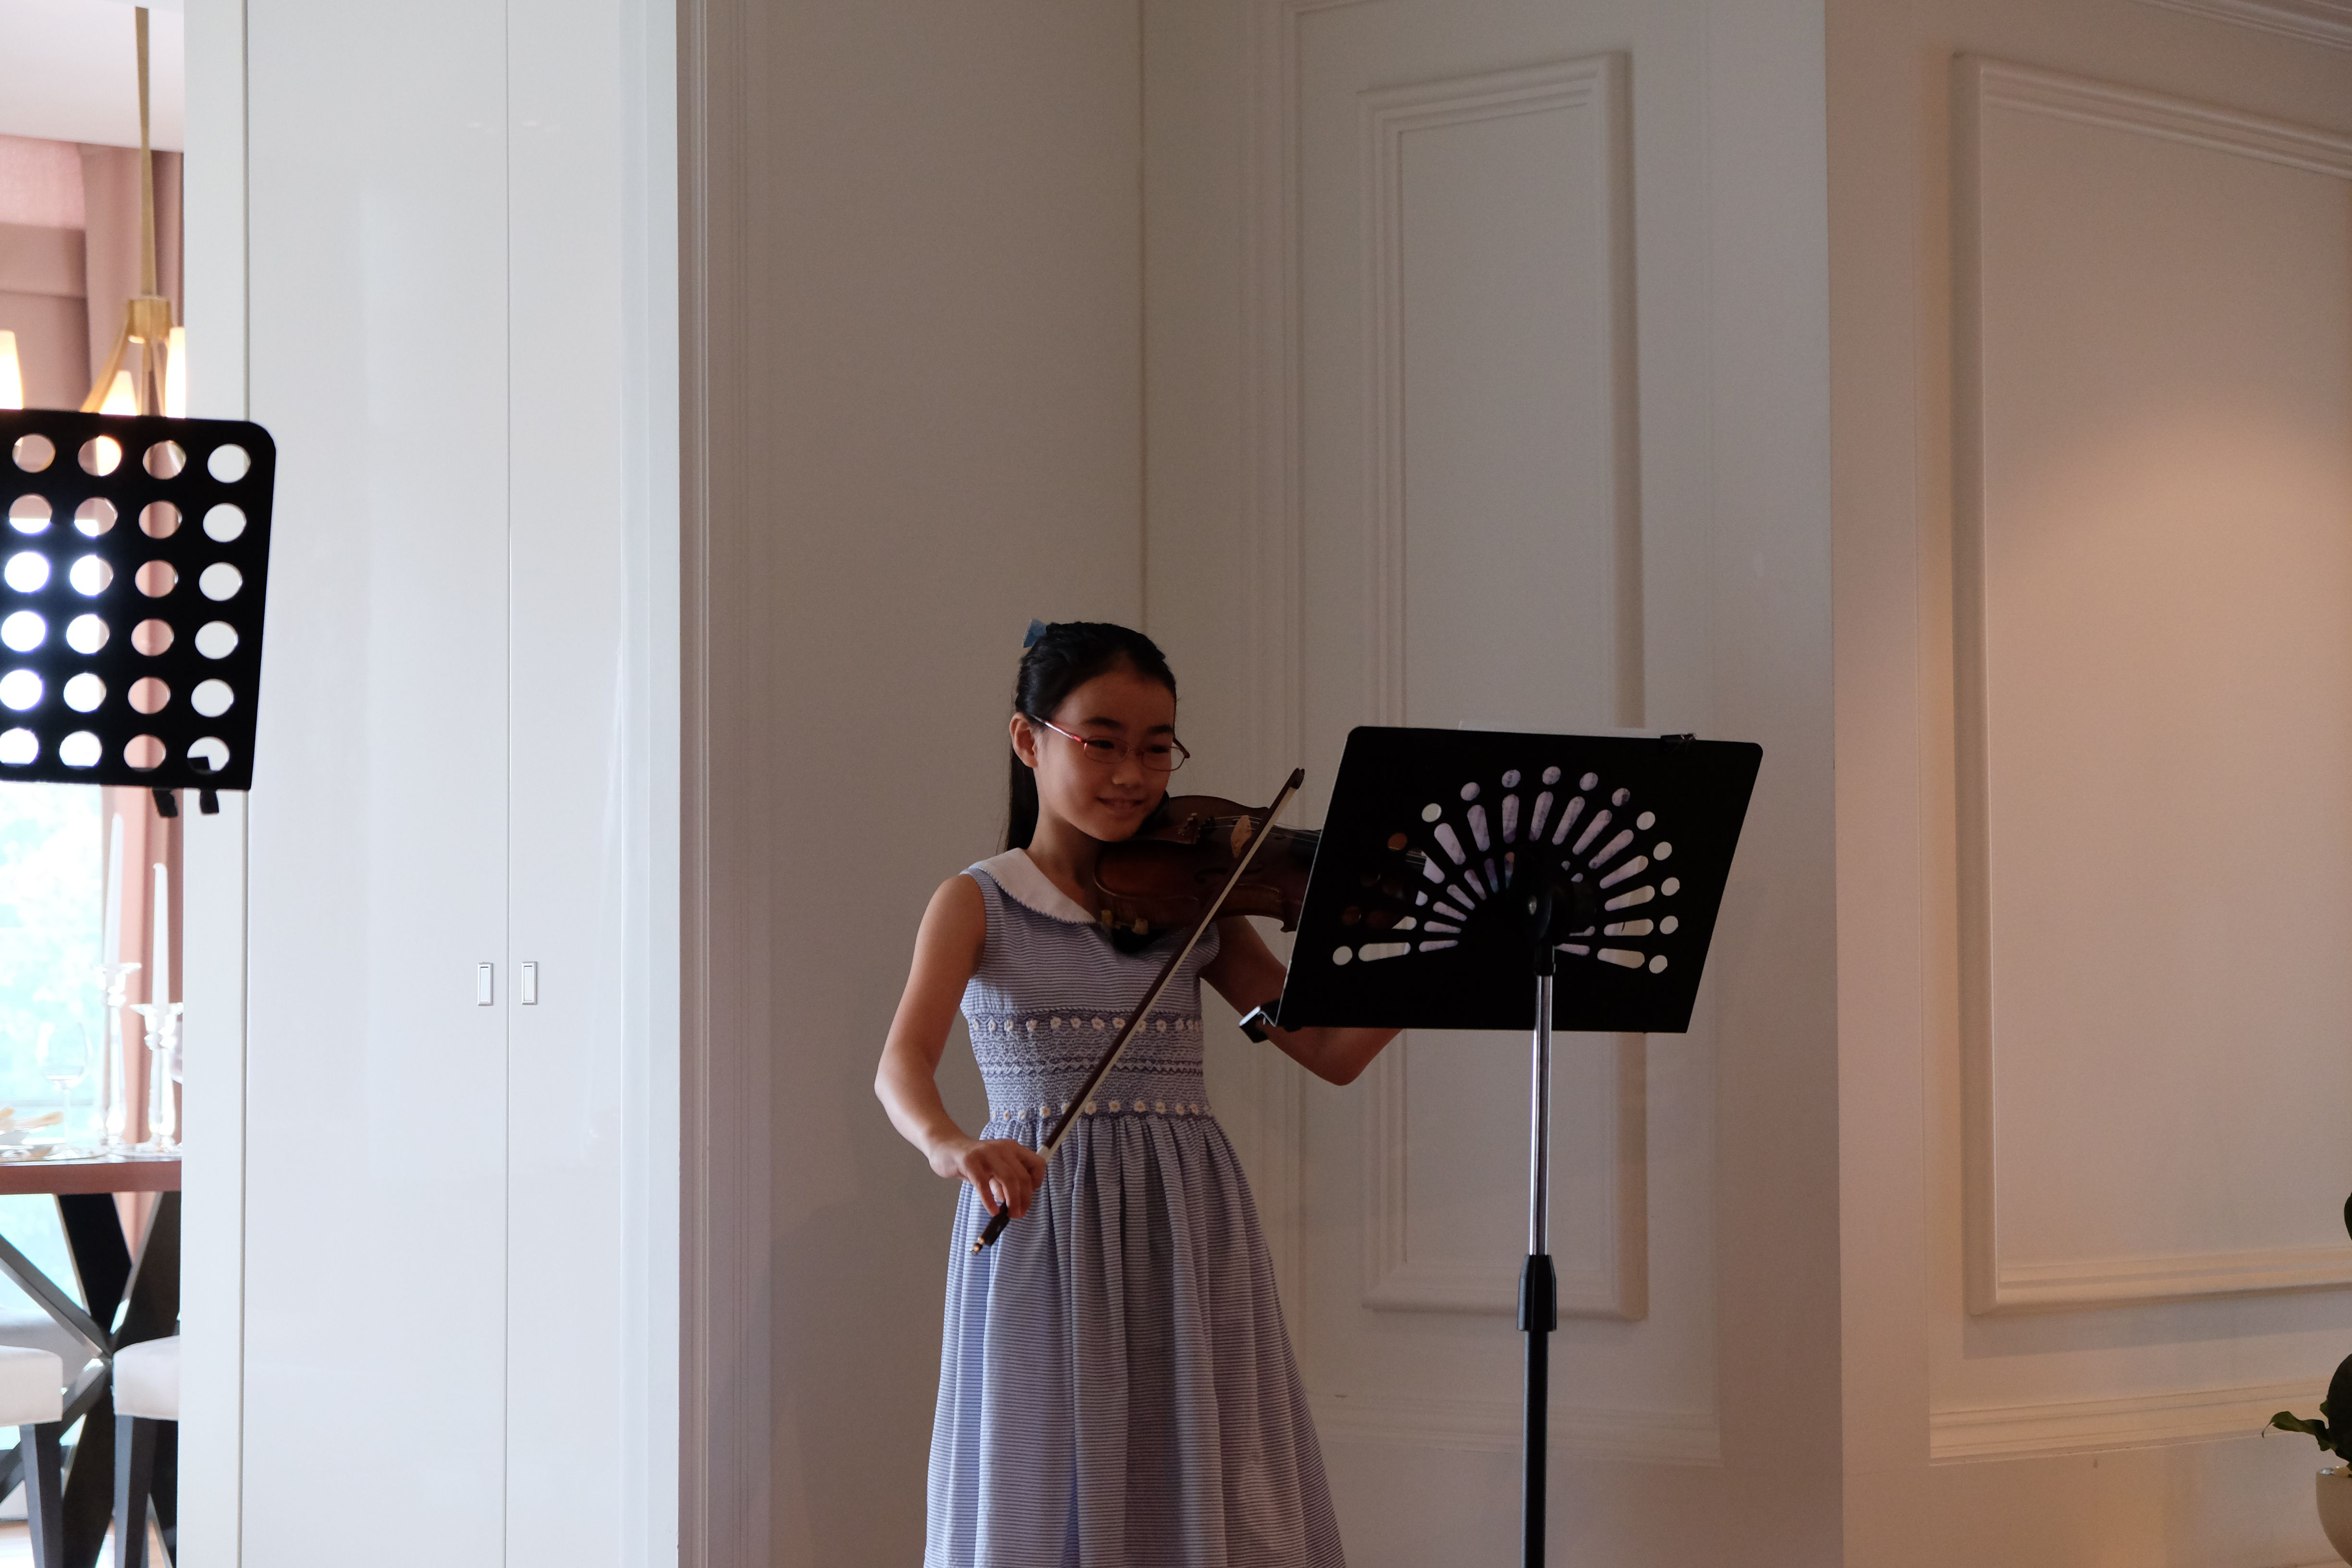 Promising young Japanese student who has played violin in Bangkok for 3 years